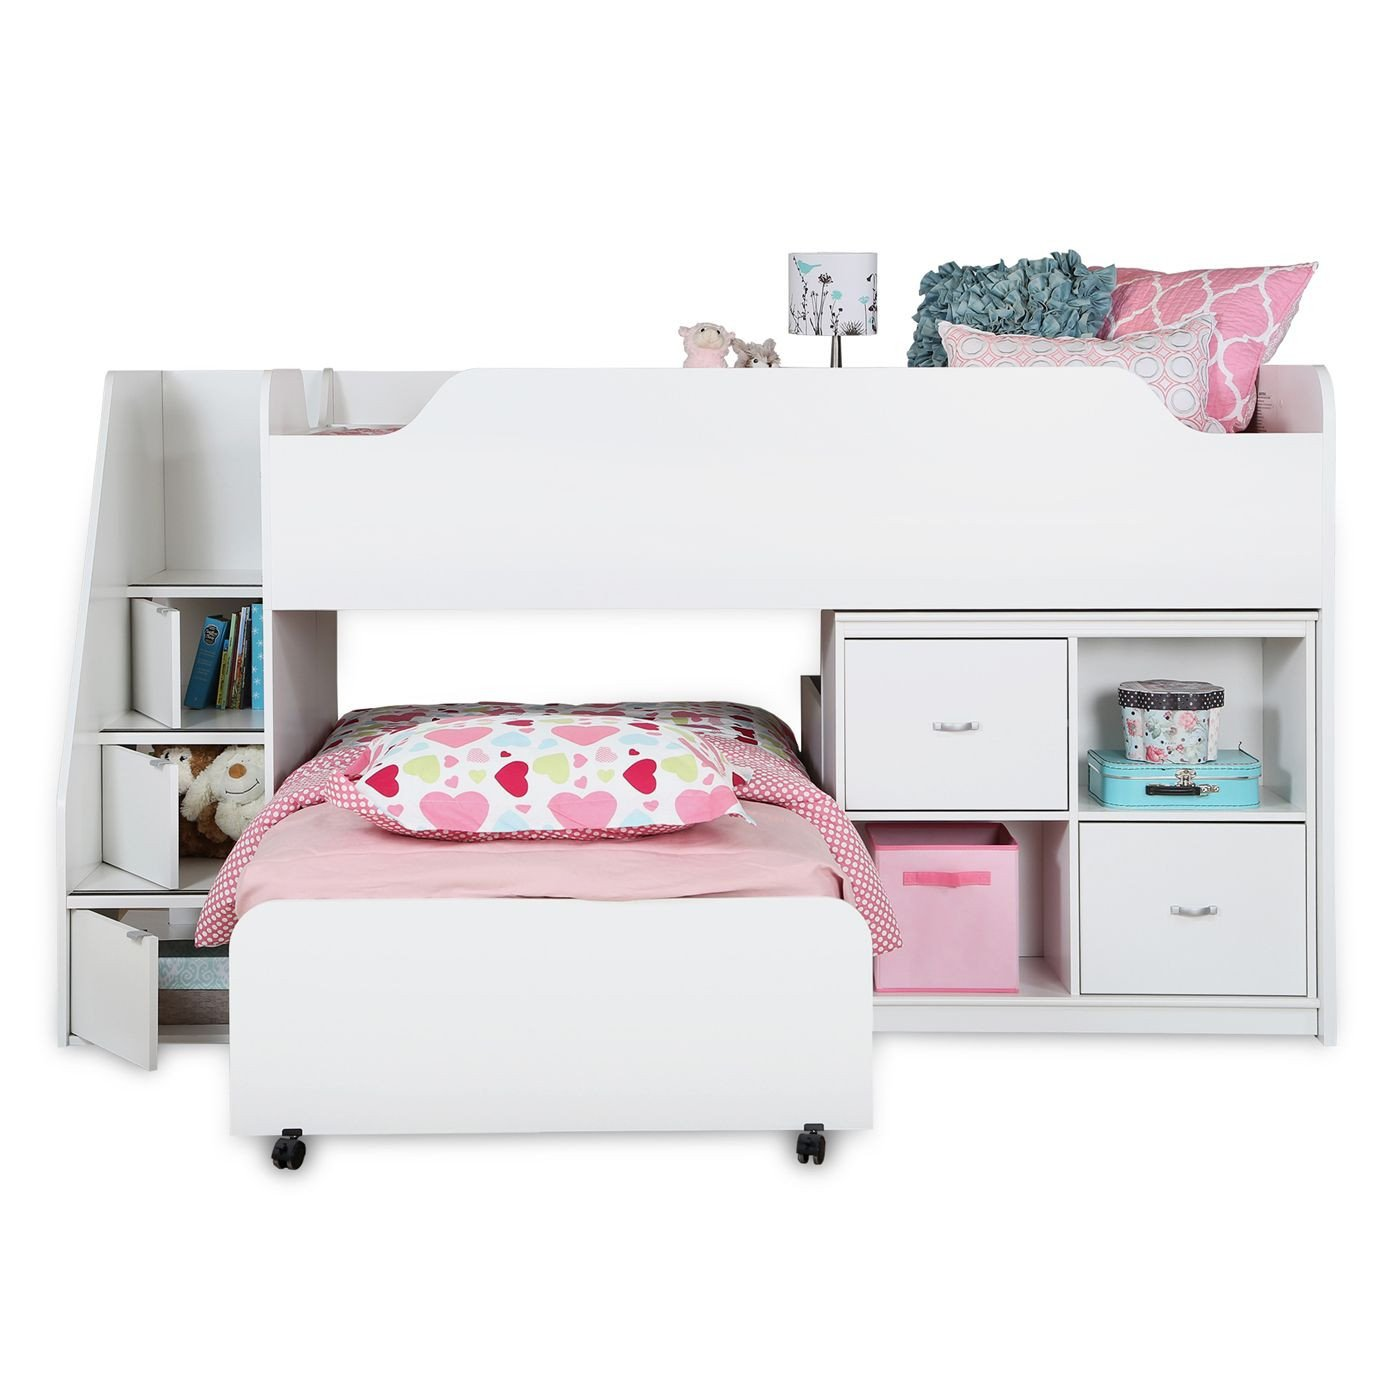 South Shore Bedroom Set Luxury south Shore Furniture Mobby Twin Loft Bed with